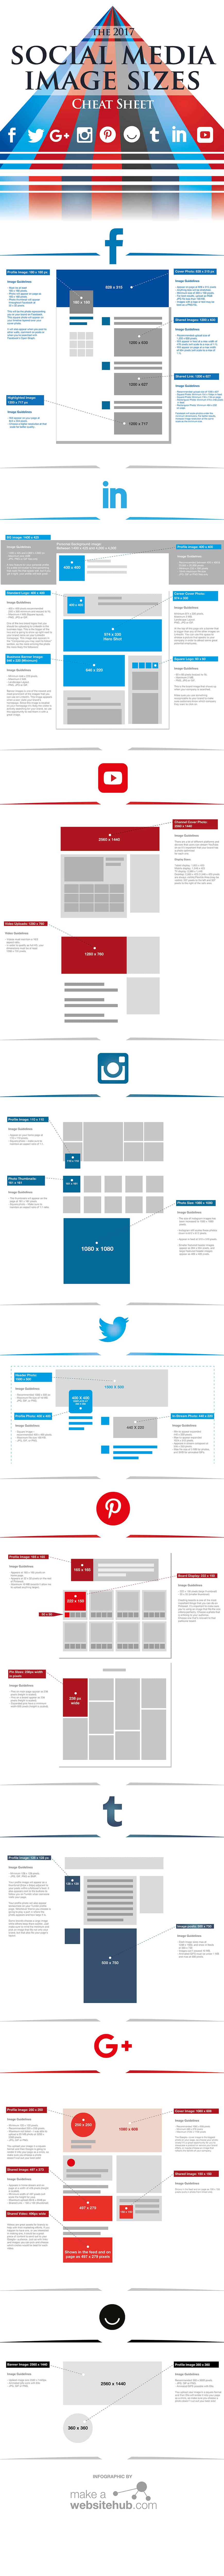 makeawebsitehub infographic - social media image sizes cheatsheet